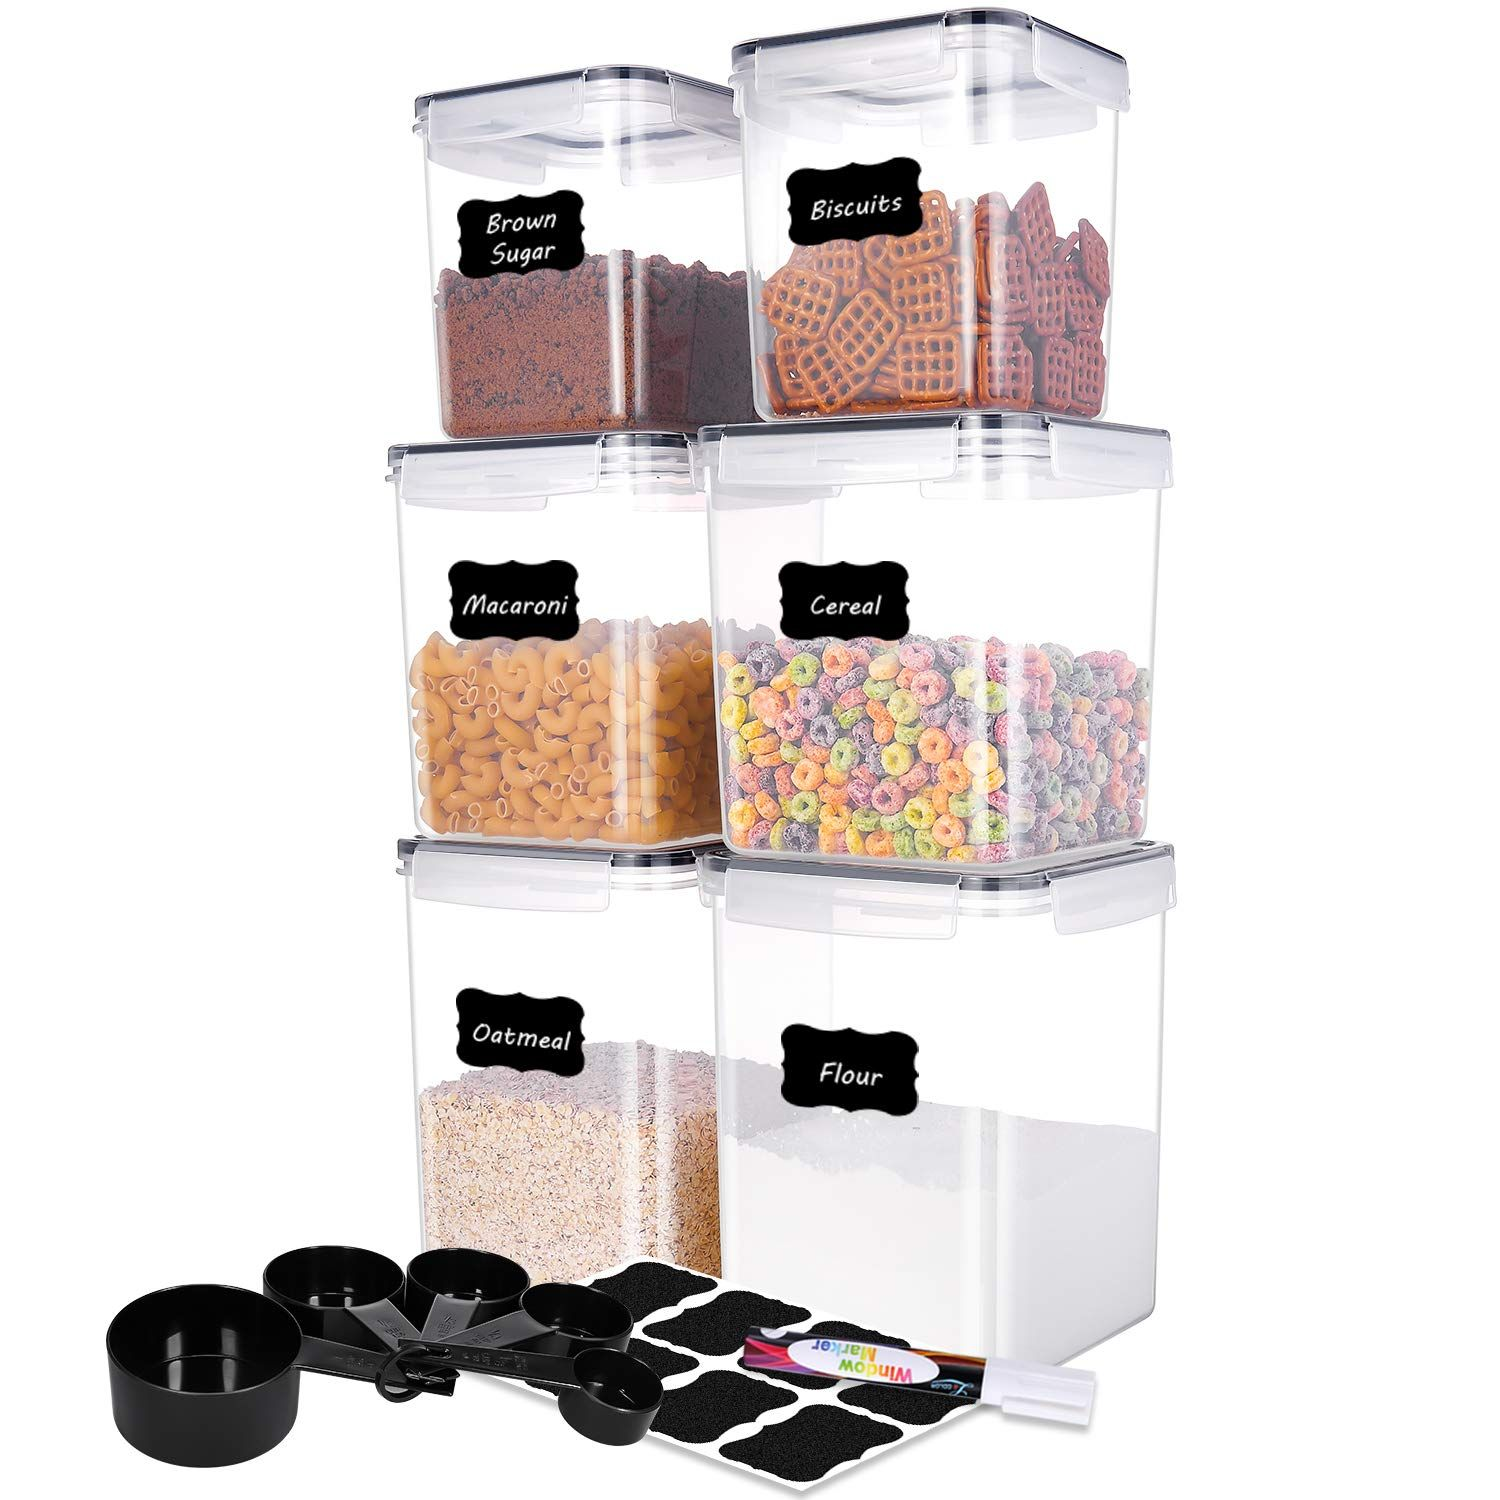 Me Fan Food Storage Containers Set Of 6 Pantry Bulk Food Canisters Flour Container Airt In 2020 Airtight Food Storage Containers Food Storage Containers Food Storage